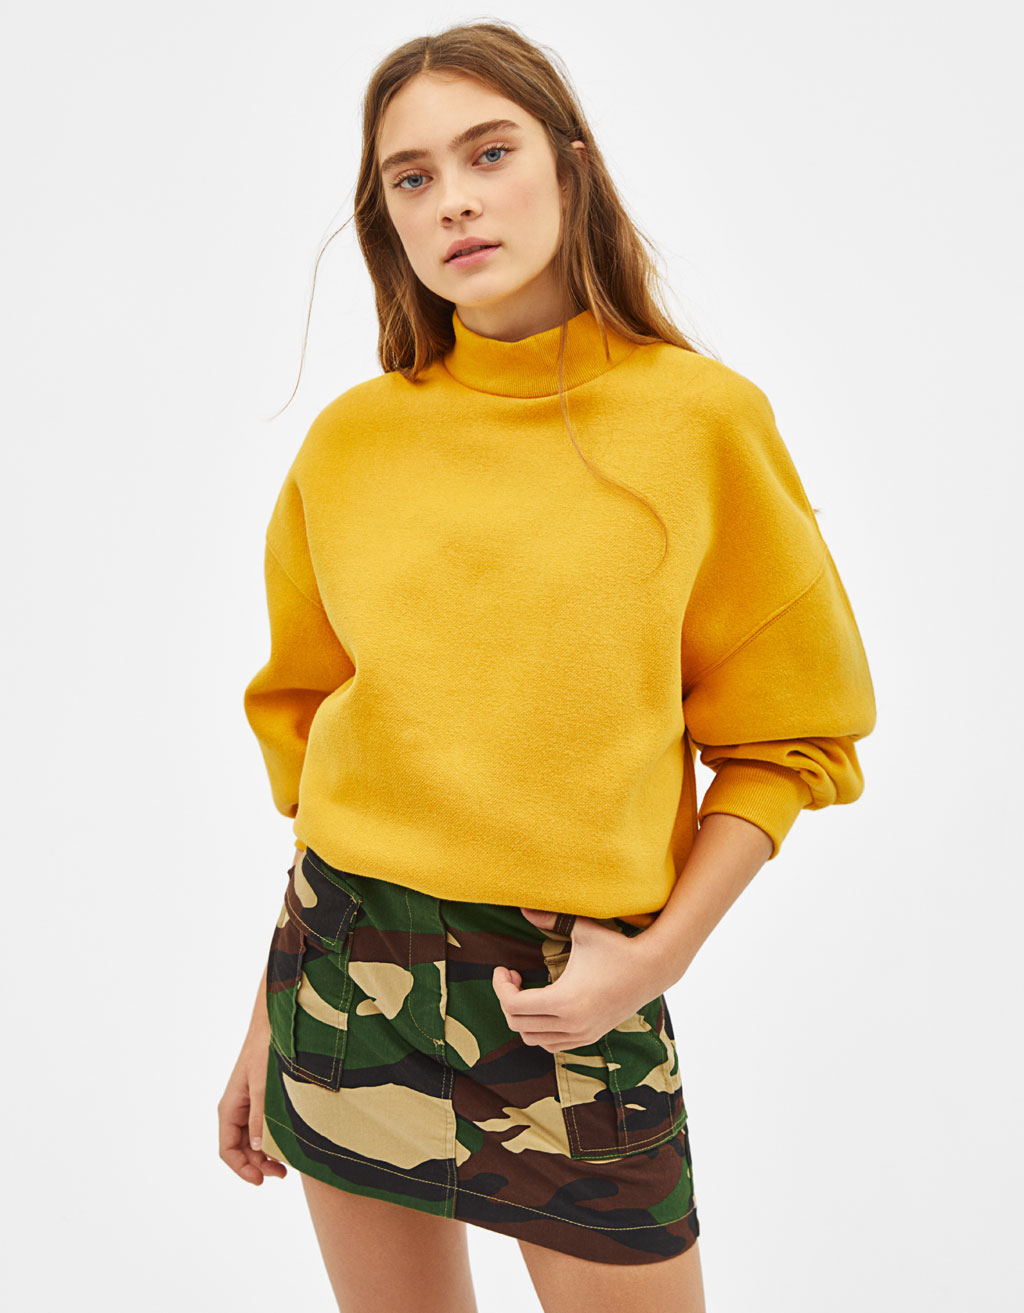 Skirt With Camouflage Print And Pockets by Bershka